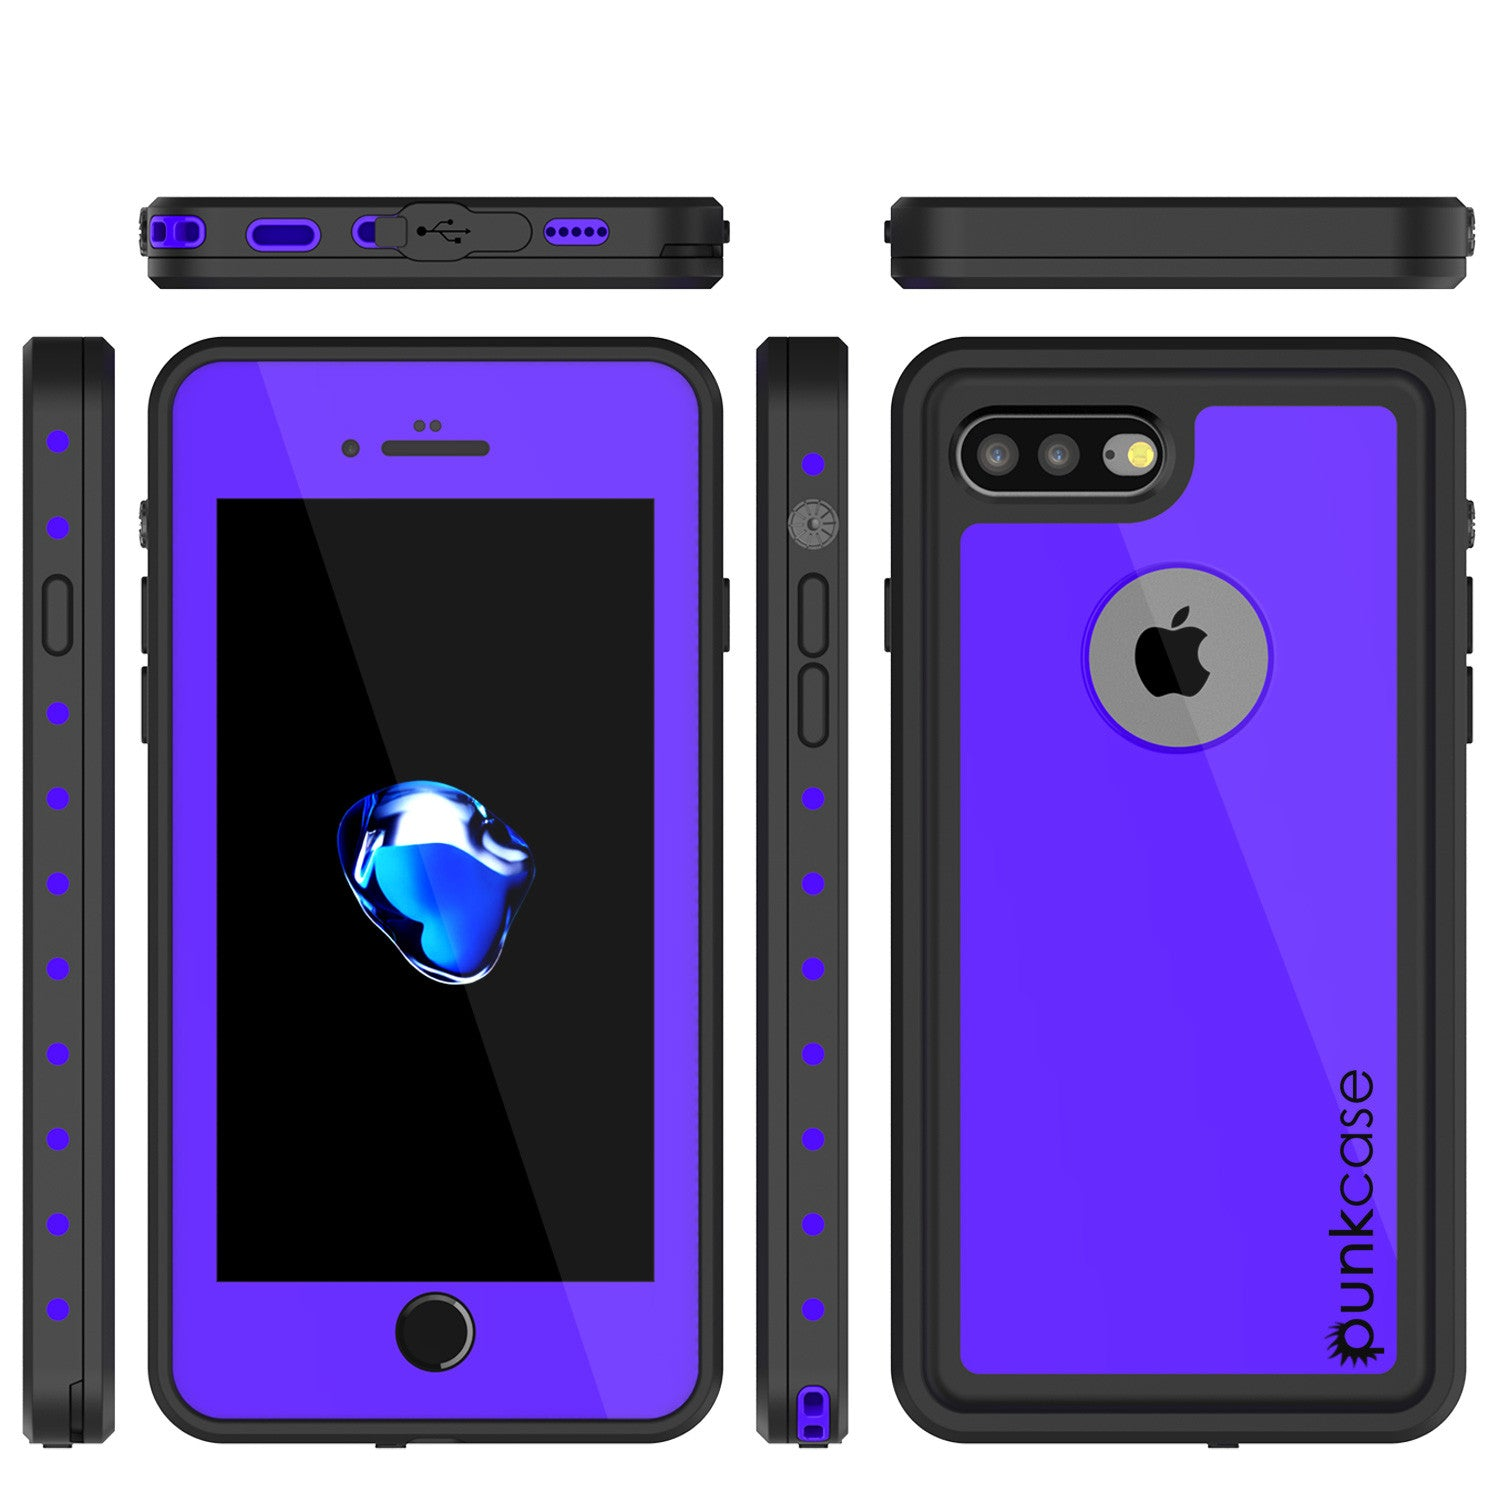 iPhone 7+ Plus Waterproof IP68 Case, Punkcase [Puple] [StudStar Series] [Slim Fit] [Dirtproof]